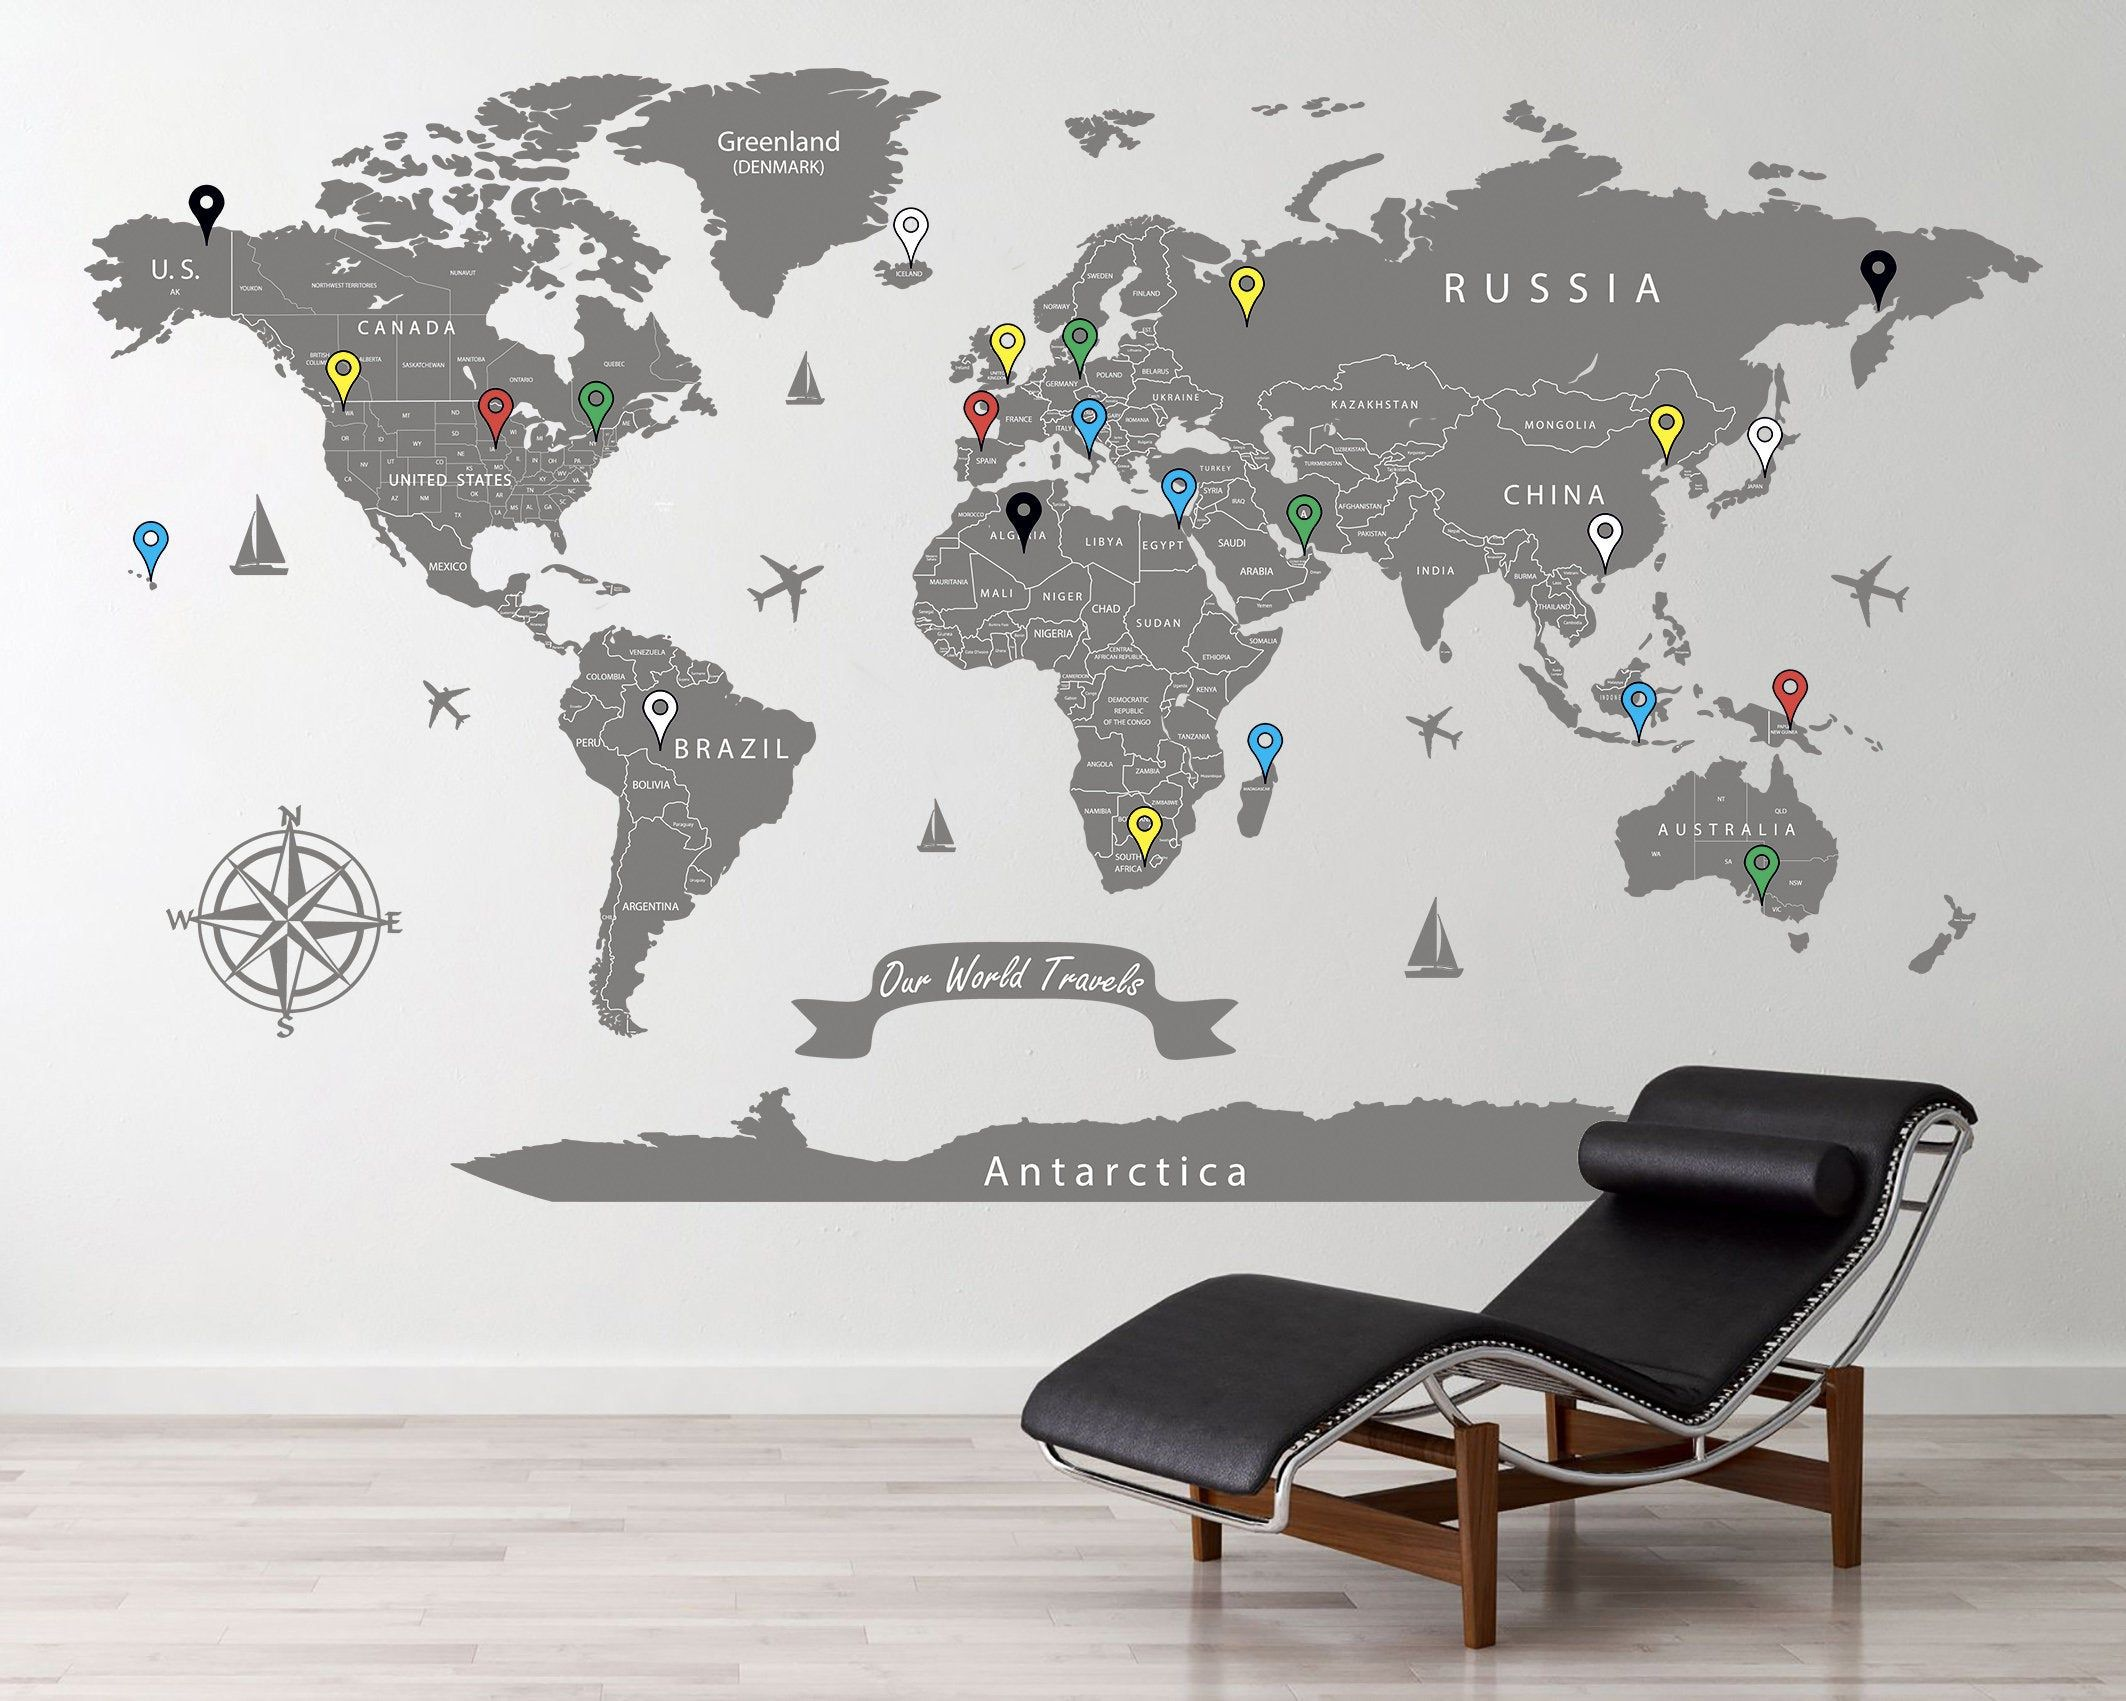 Extra Large World Map Decal Gray World Map Travel Map Decal Etsy World Map Decal World Map Wall Art Map Decal